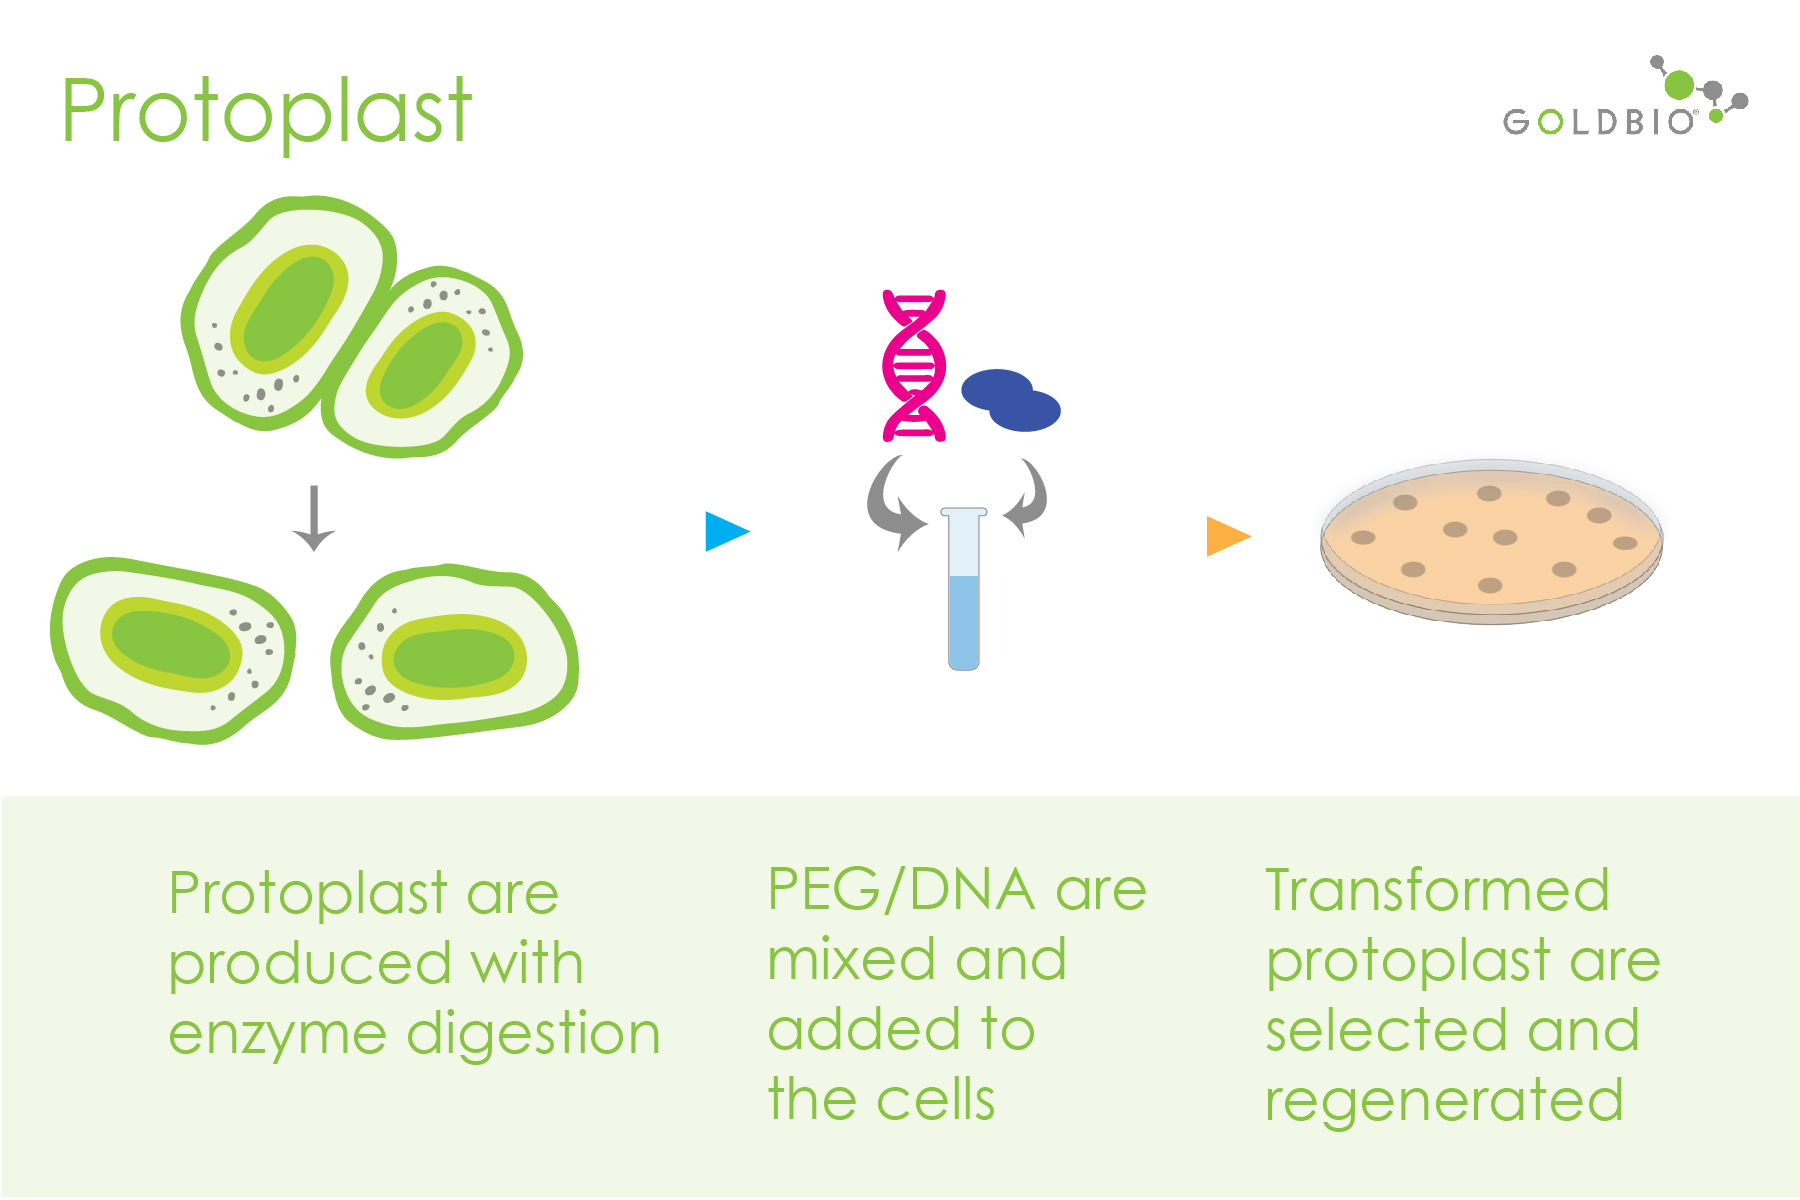 protoplast-mediated transformation process - shows the creation of protoplast cells or naket cells, adding dna into the cells and regeneration